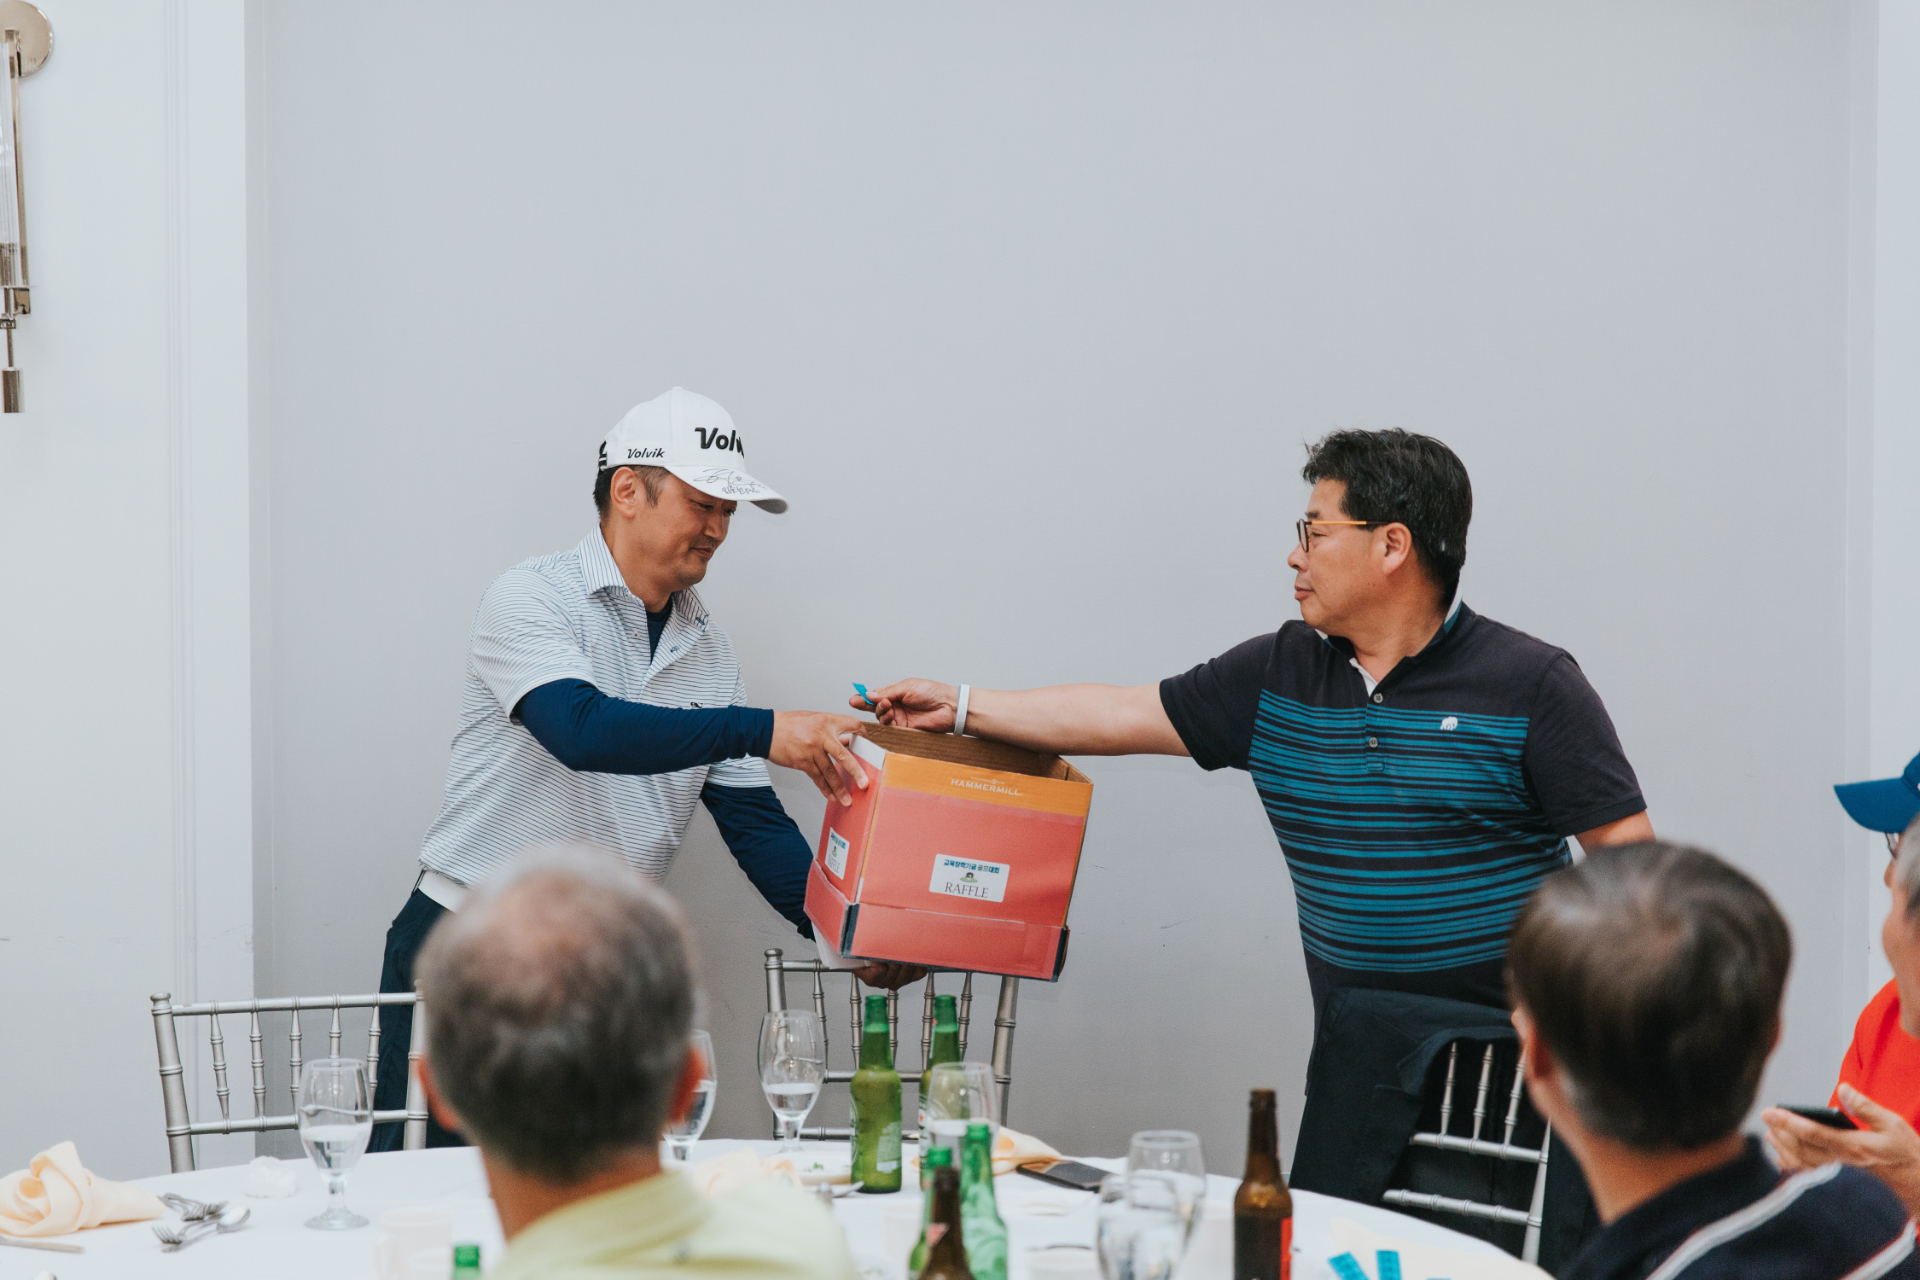 https://nykbi.com/new/wp-content/uploads/2019/07/190619-Scholarship-Fundraising-Golf-Tournament-042.jpg